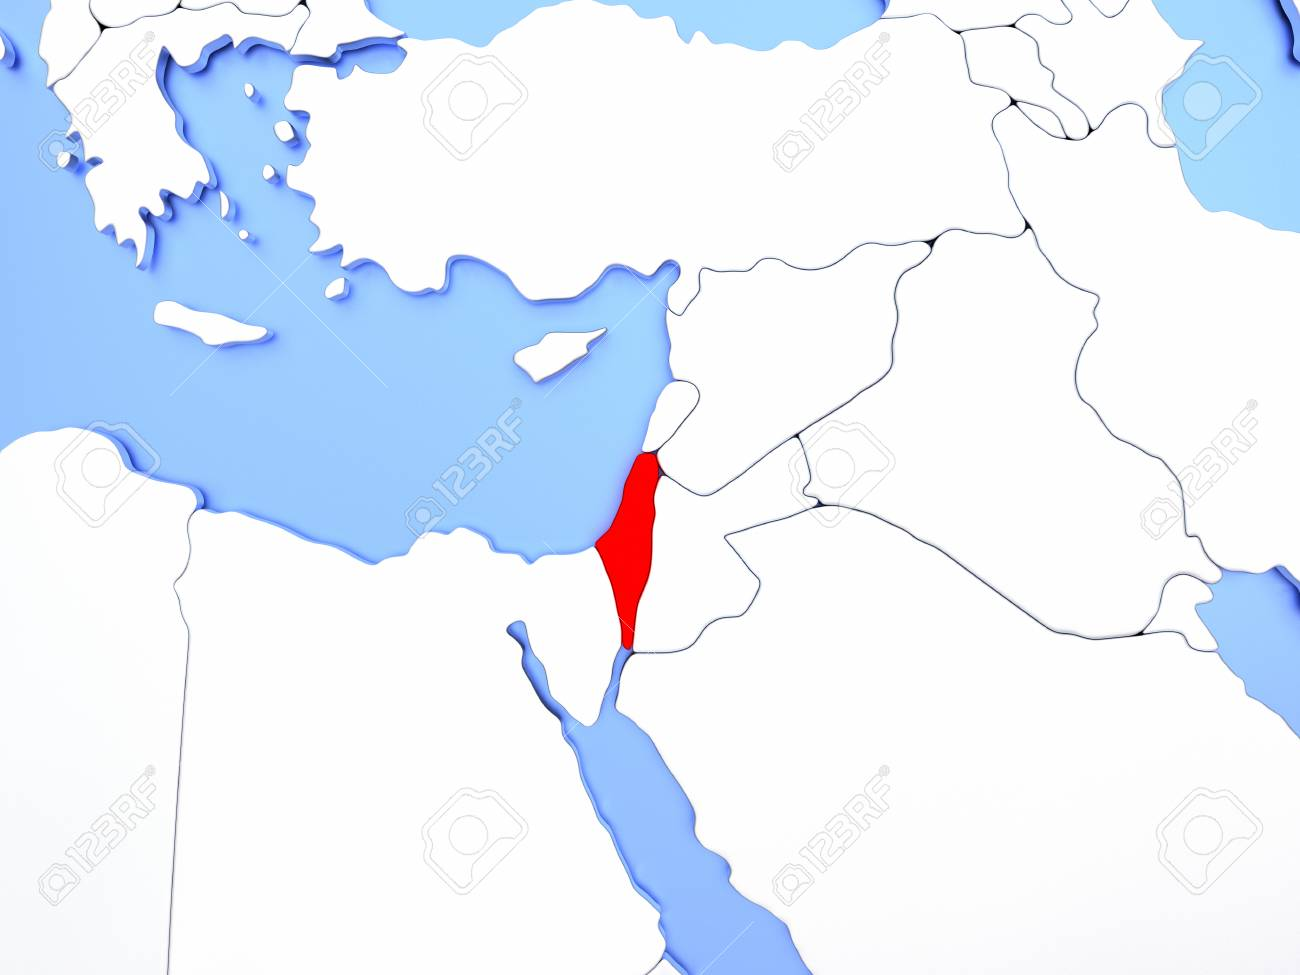 Map of israel highlighted in red on simple shiny metallic map illustration map of israel highlighted in red on simple shiny metallic map with clear country borders 3d illustration gumiabroncs Images